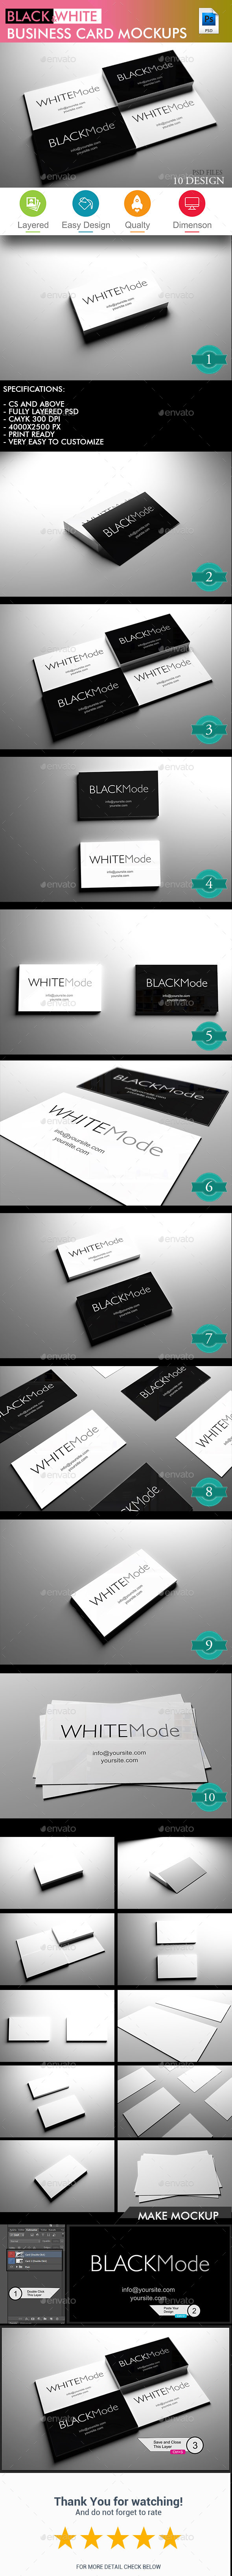 Black & White Business Card Mockup - Volume 2 - Business Cards Print